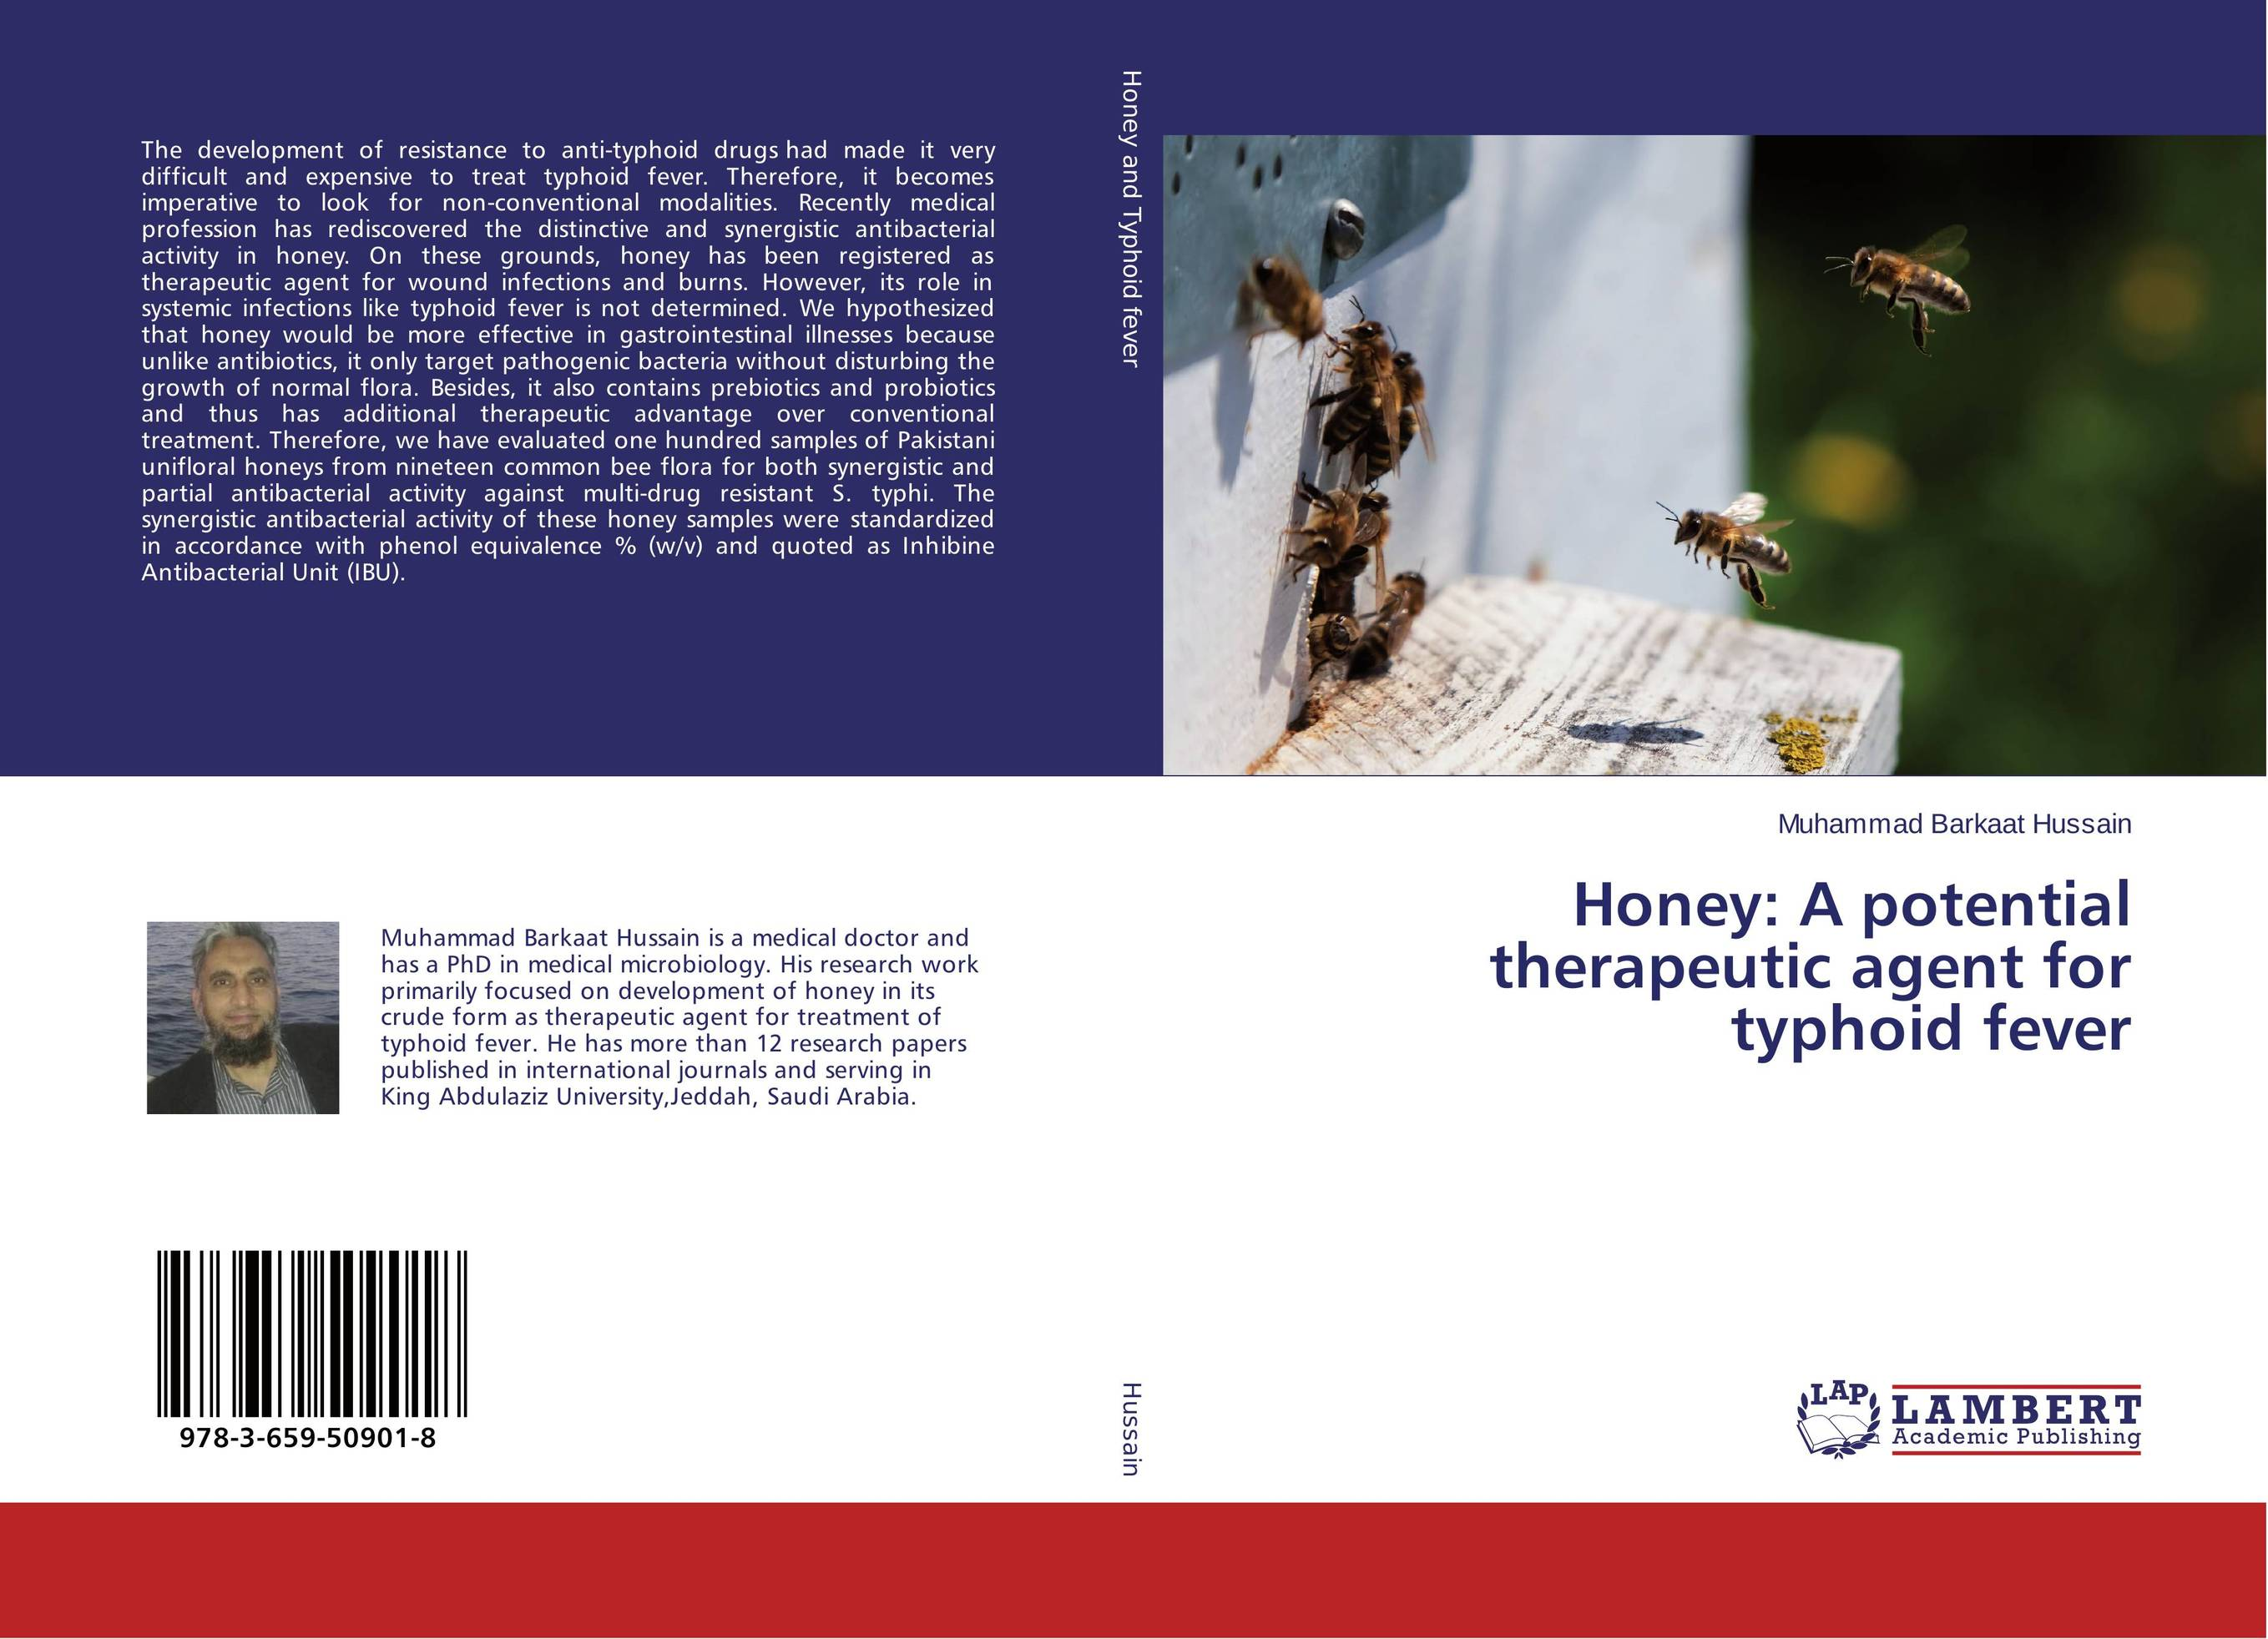 Honey: A potential therapeutic agent for typhoid fever infrared allergic rhinitis treatment machine hay fever chronic rhinitis laser therapeutic apparatus